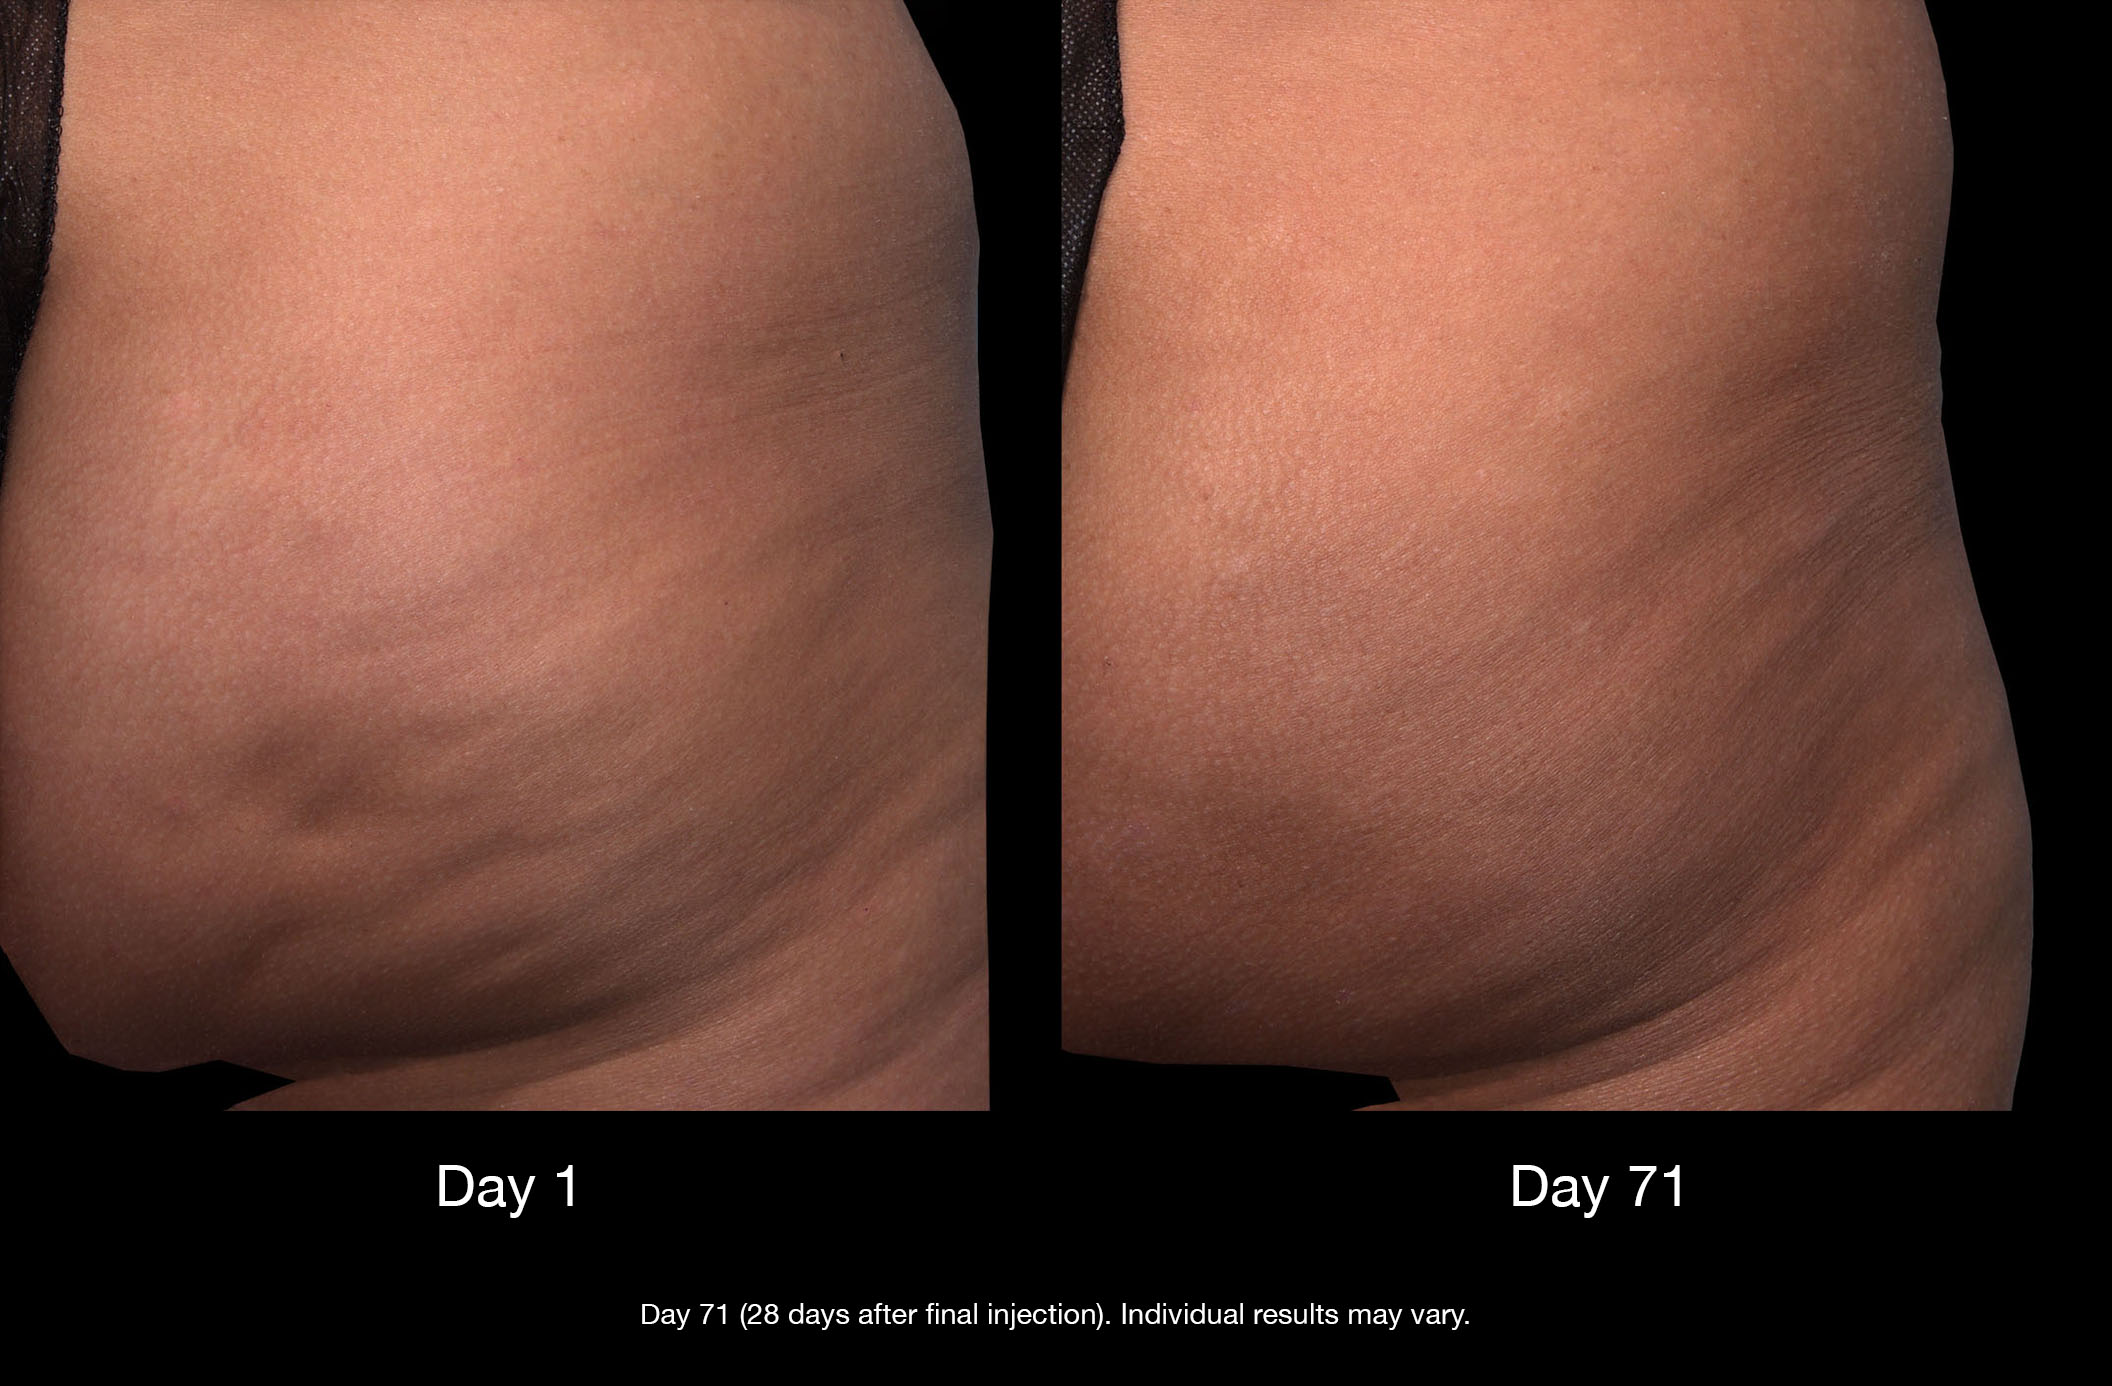 Image showing results after QWO injections for treating cellulite, New York City, NY